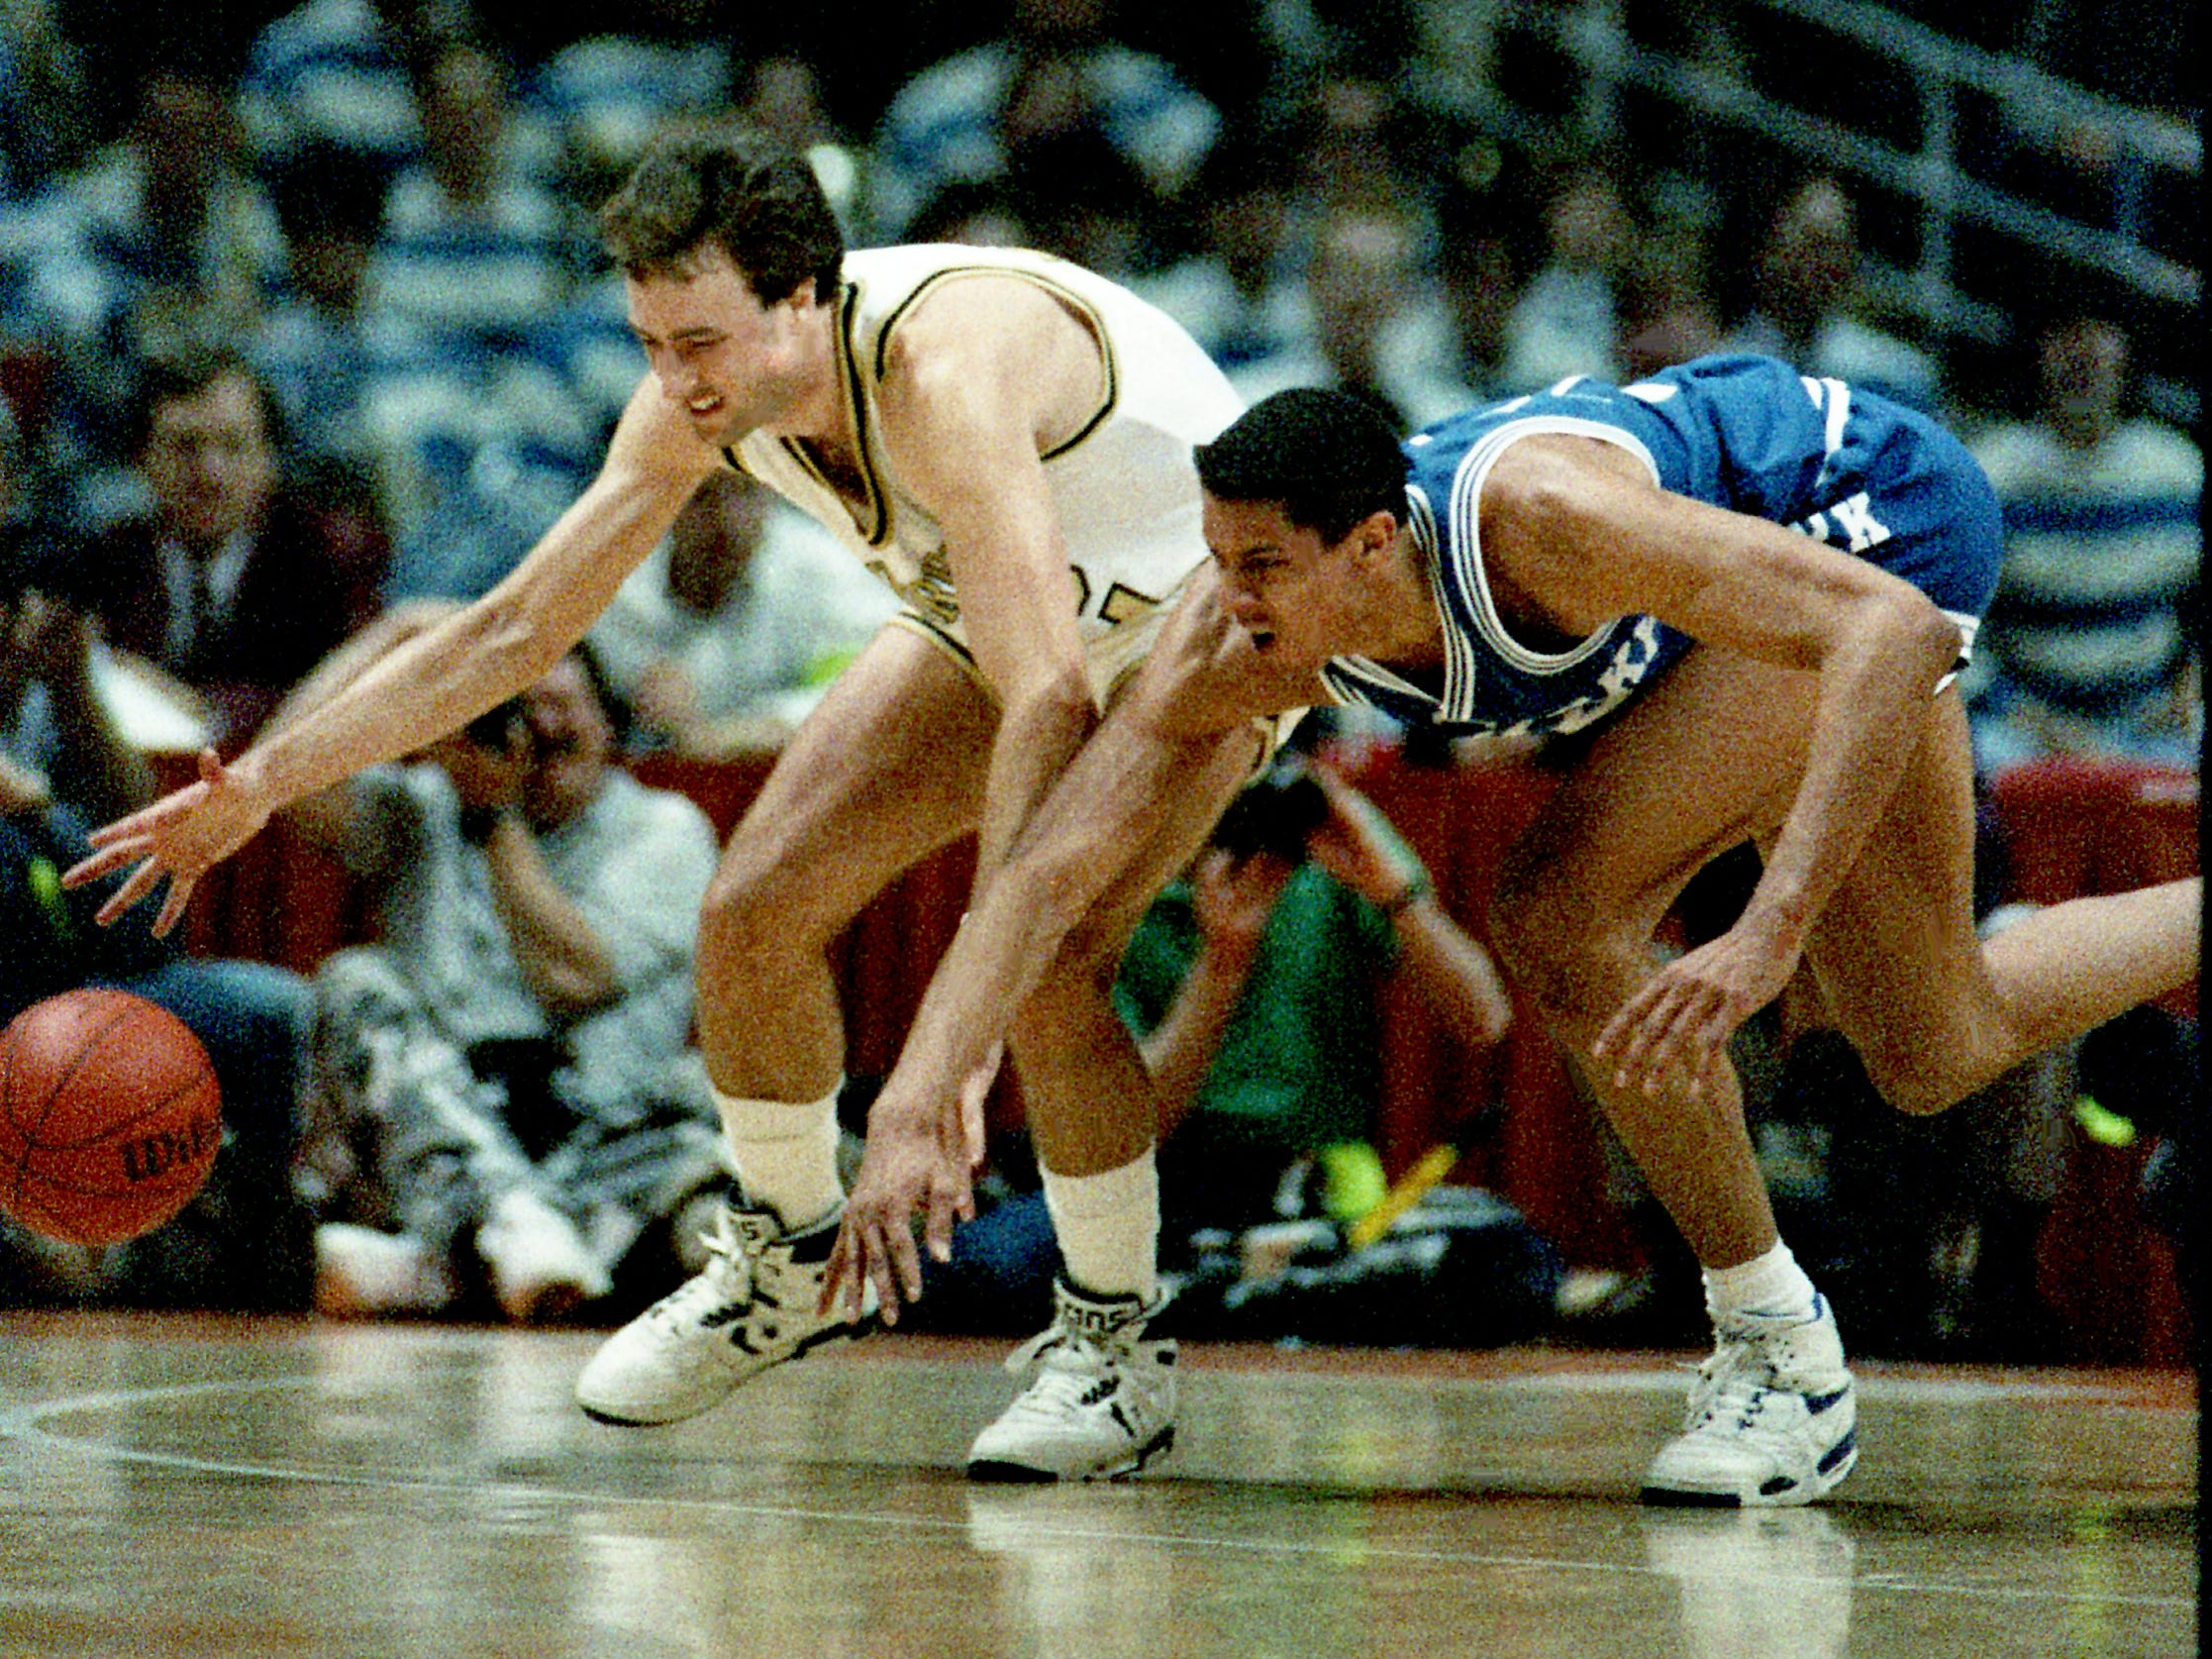 Vanderbilt's Barry Goheen, left, and Kentucky's LeRon Ellis are in step as they go after a loose ball as the Commodores defeated Kentucky 77-63 in the SEC Championship Tournament at Tennessee's Thompson-Boling on March 10, 1989. The win marked the school's first SEC tournament win in five years.